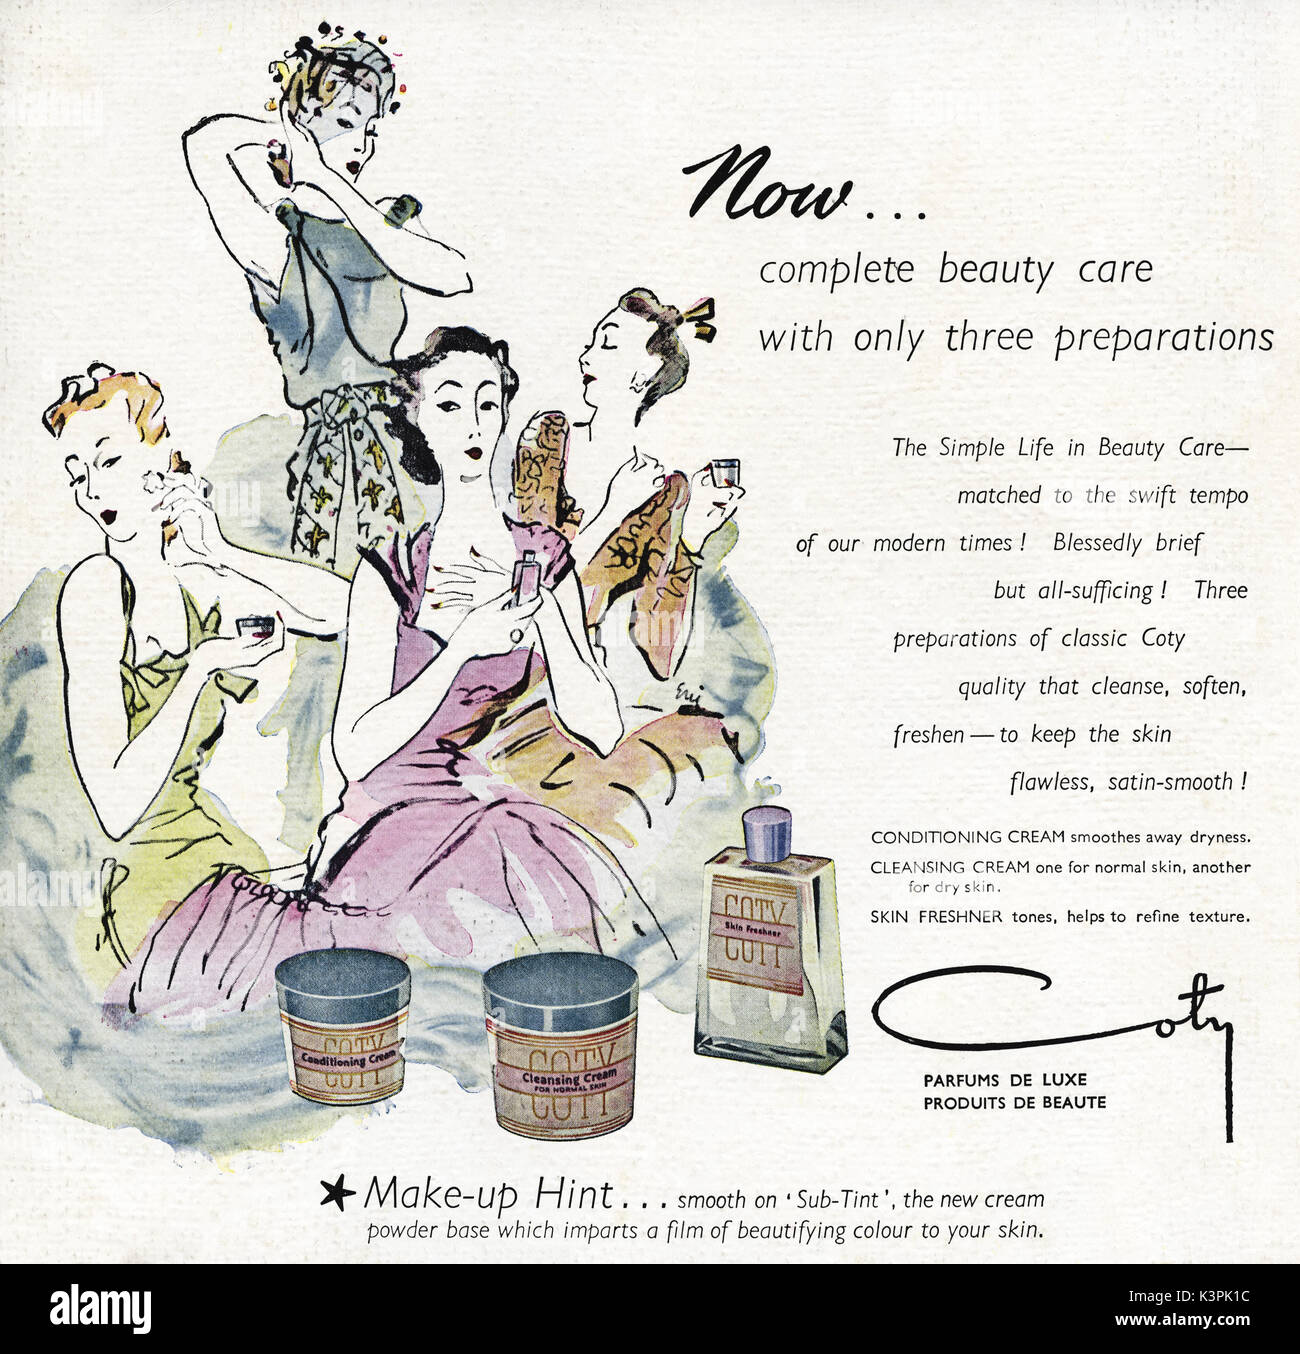 1940s old vintage original advert advertising Coty make-up & beauty cosmetics in magazine circa 1947 when supplies were still restricted under post-war rationing - Stock Image